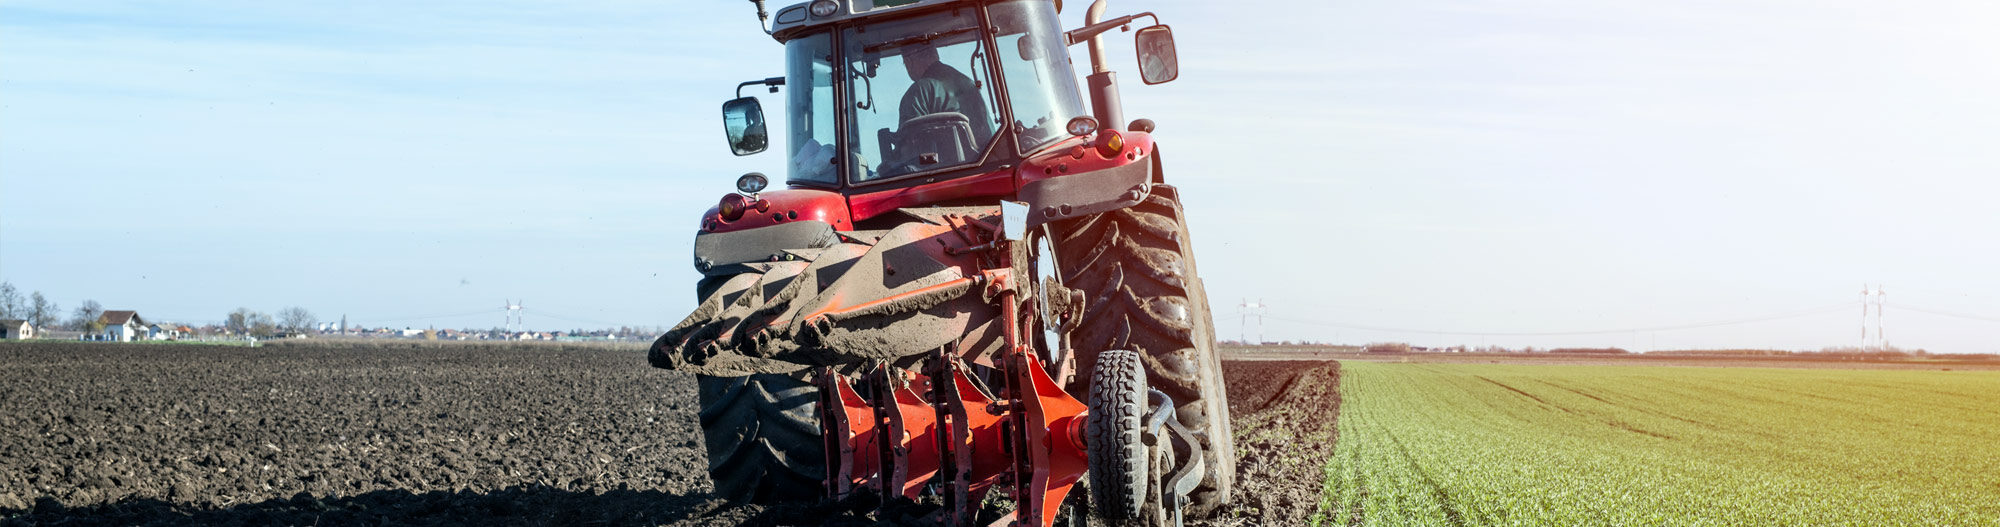 agronomy services